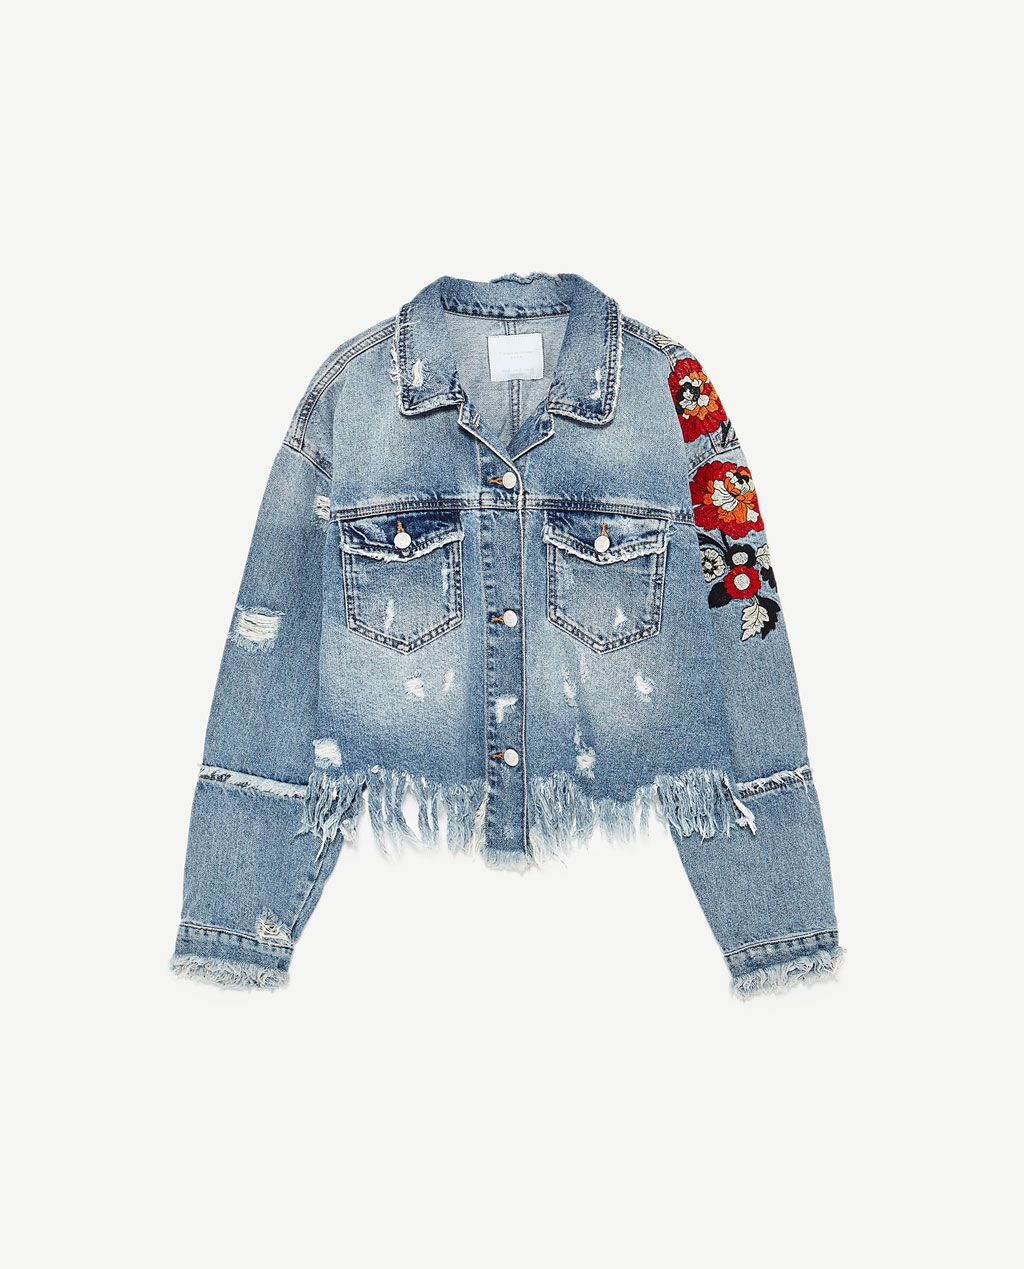 5a4577d6 Image 8 of EMBROIDERED DENIM JACKET from Zara | my style | Pinterest ...